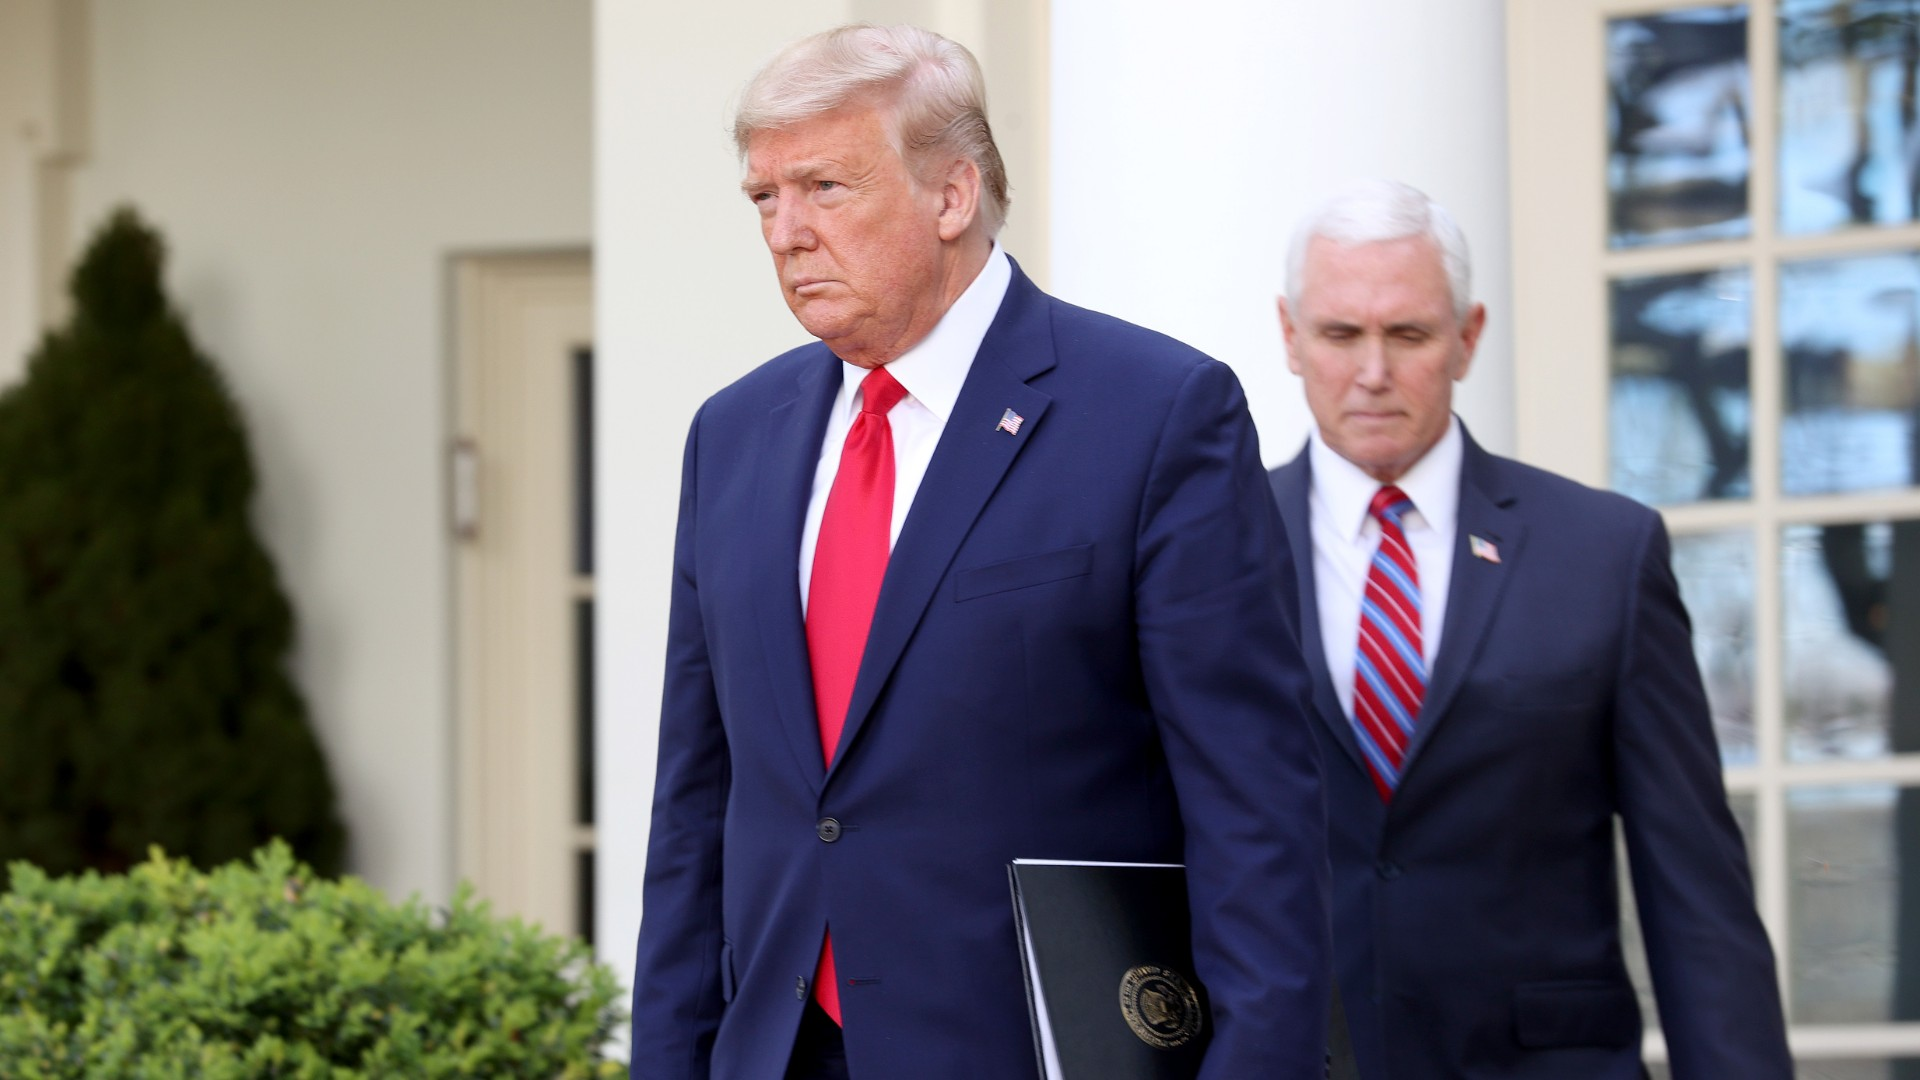 U.S. President Donald Trump and Vice president Mike Pence arrive for the daily coronavirus task force briefing at the Rose Garden of the White House on March 30, 2020 in Washington, DC. (Win McNamee/Getty Images)